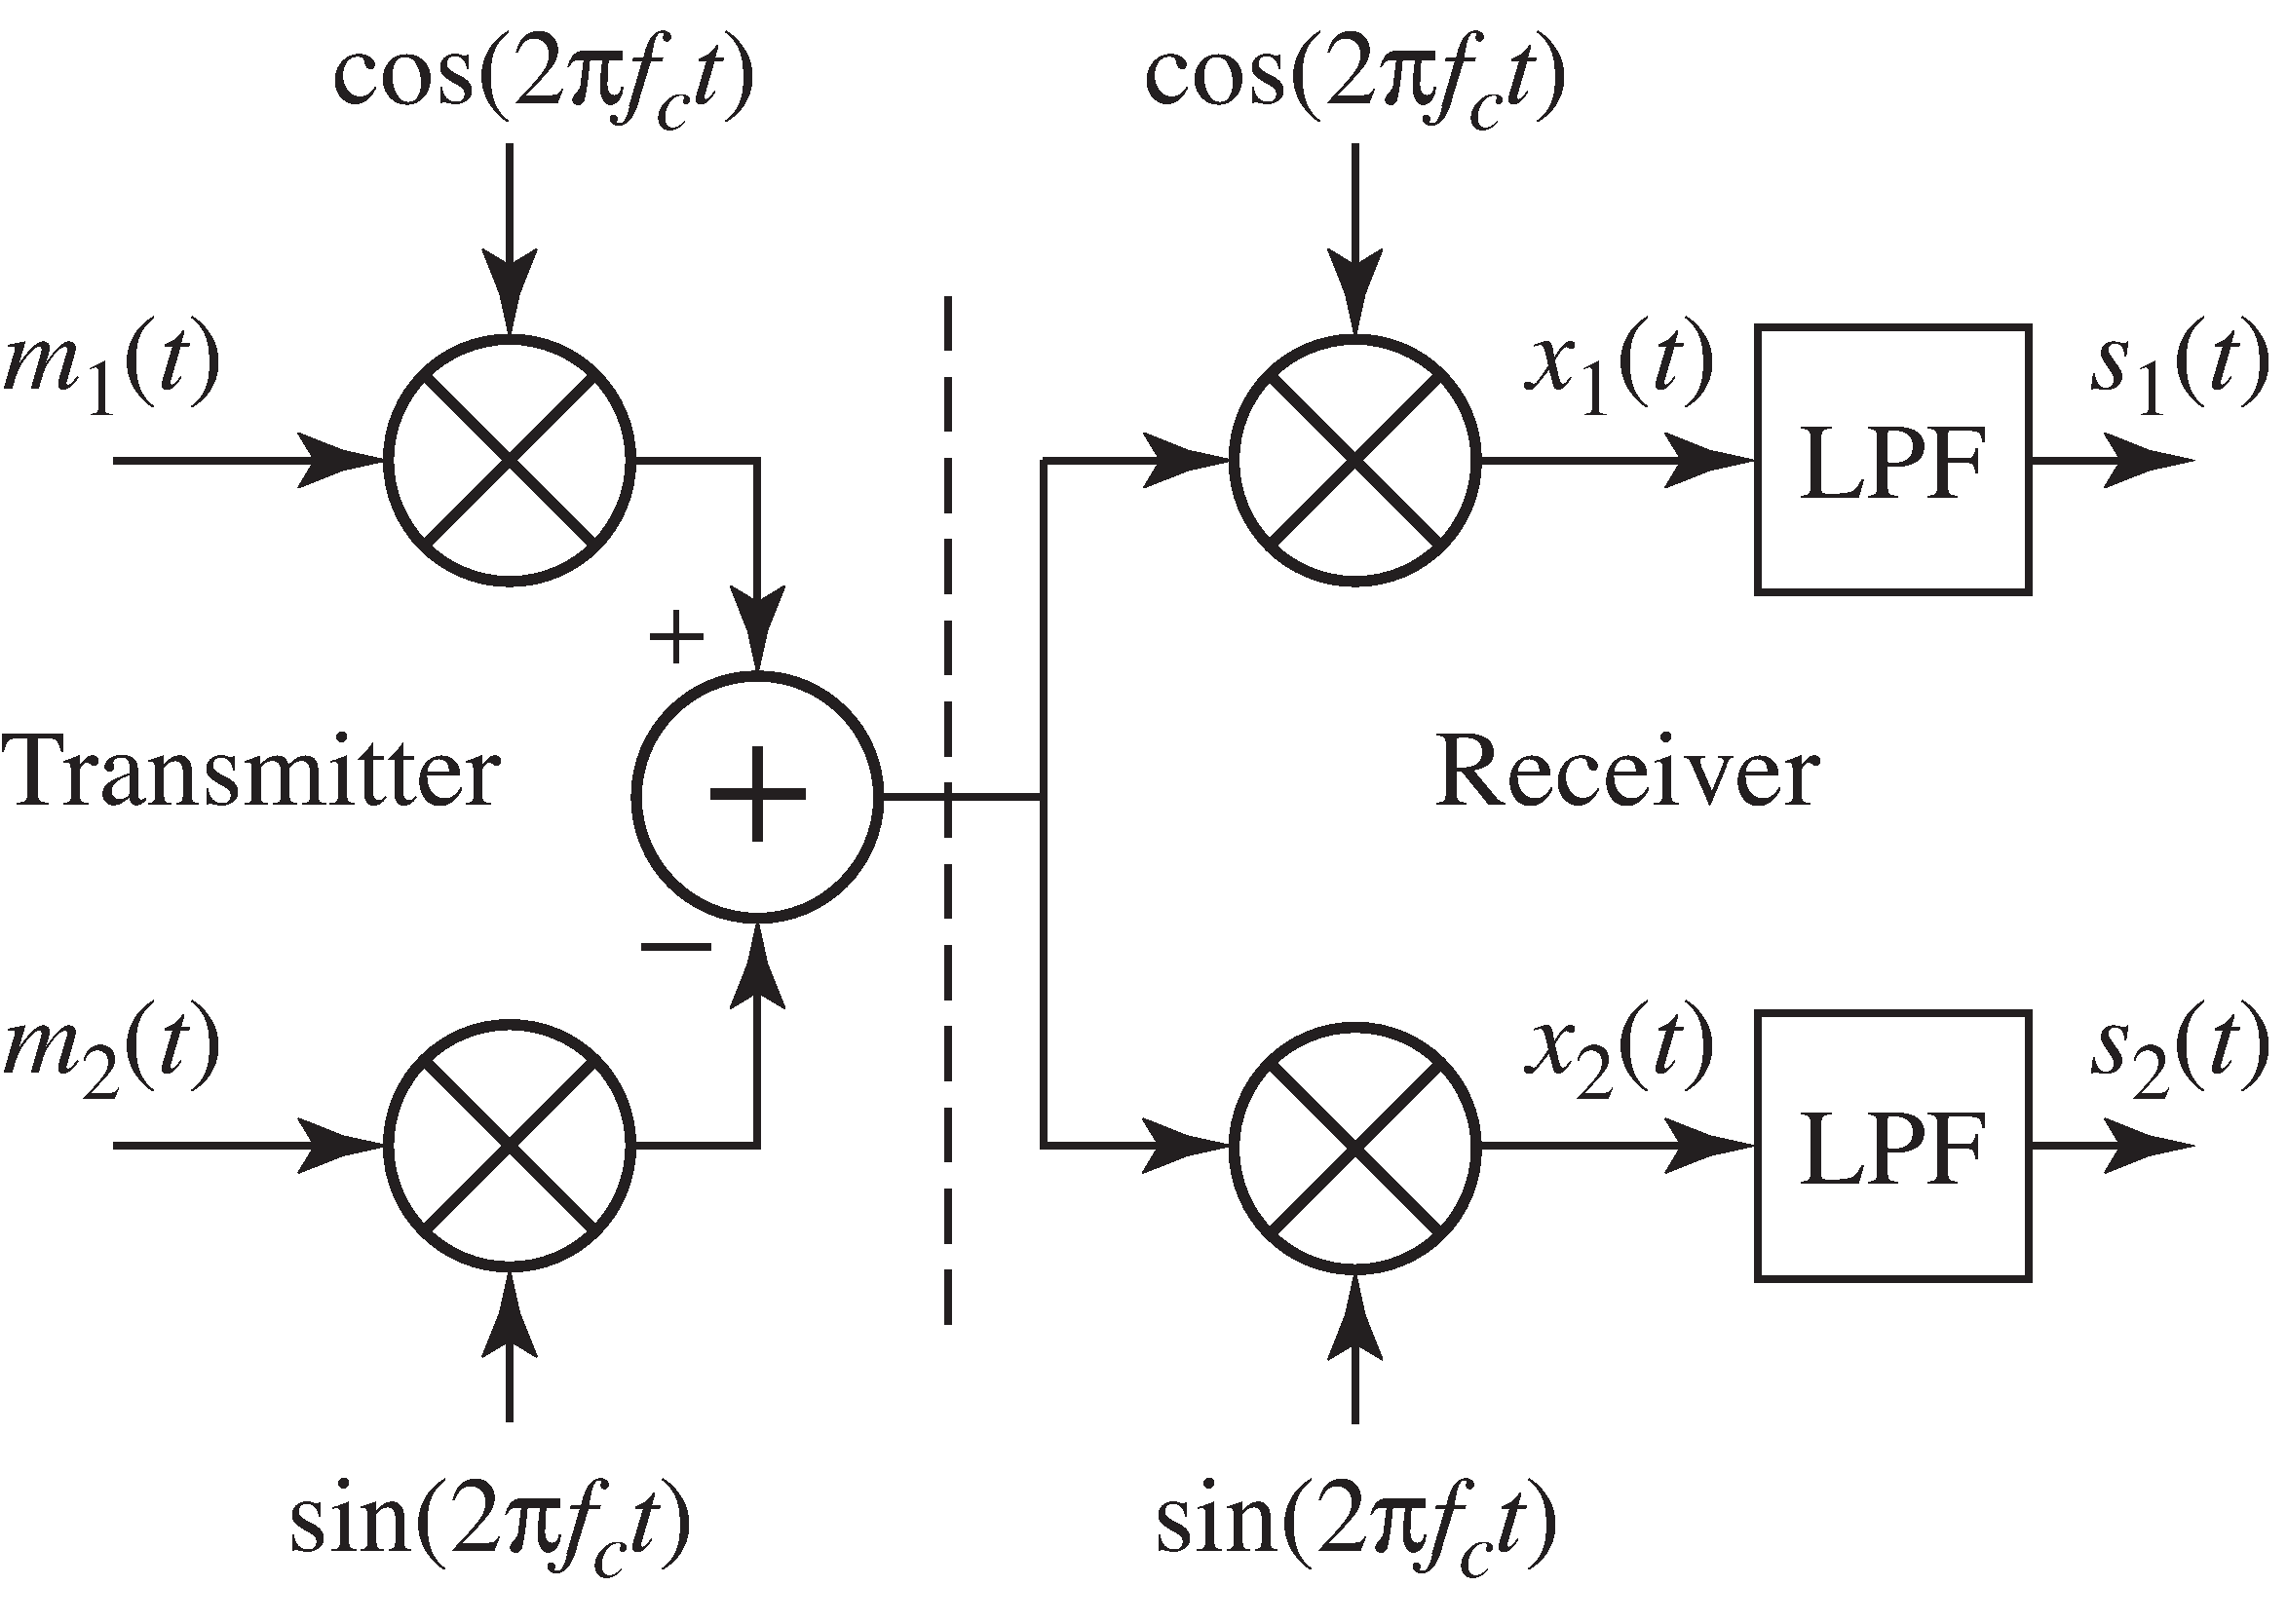 In a quadrature modulation system, two messages m_1(t) and m_2(t) are modulated by two sinusoids of the same frequency, sin(2πf_ct) and cos(2πf_ct). The receiver then demodulates twice and recovers the original messages after lowpass filtering.